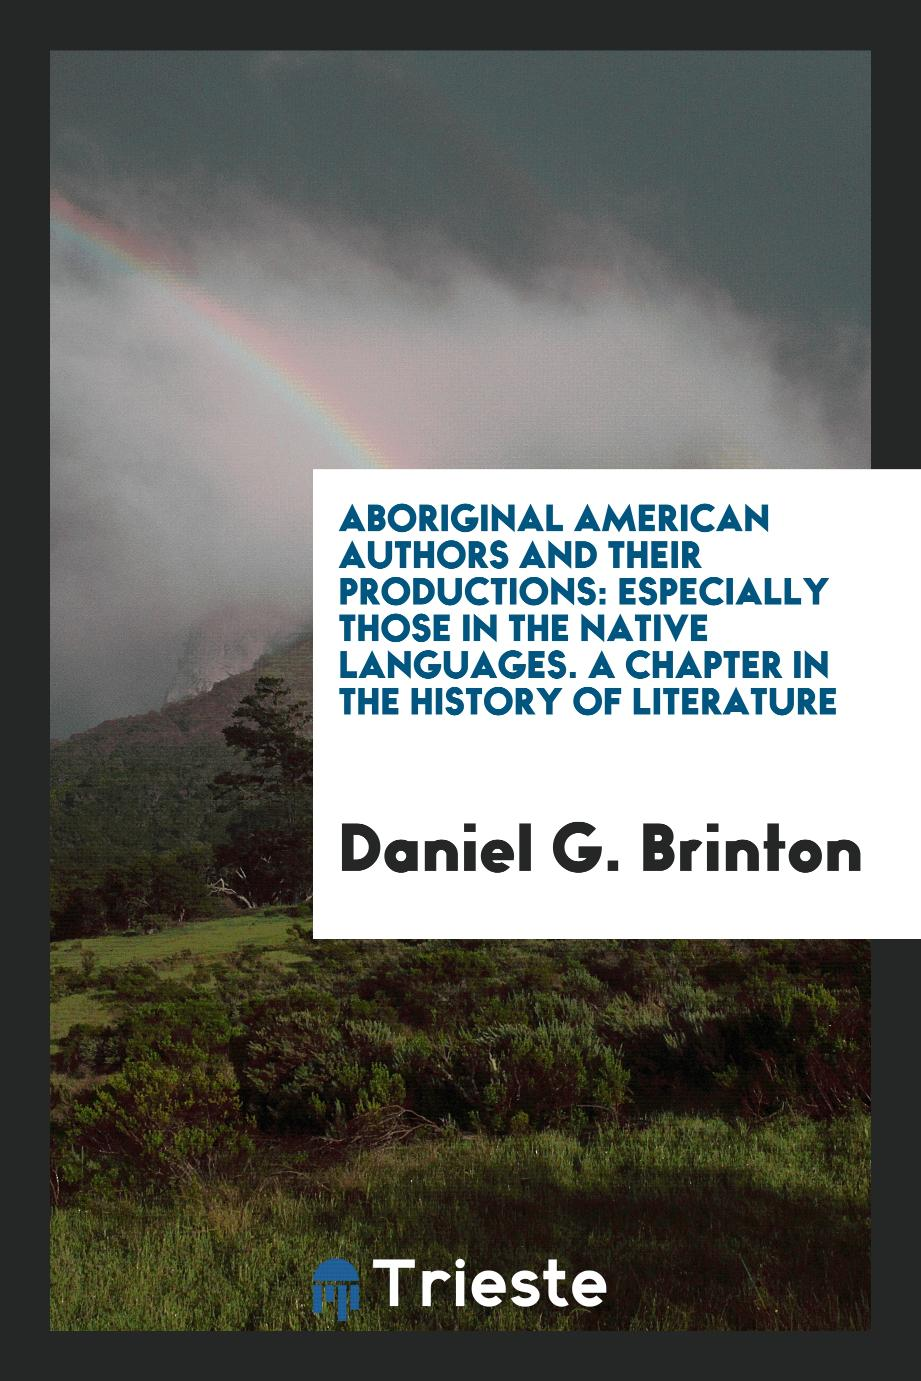 Aboriginal American Authors and Their Productions: Especially Those in the Native Languages. A chapter in the history of literature